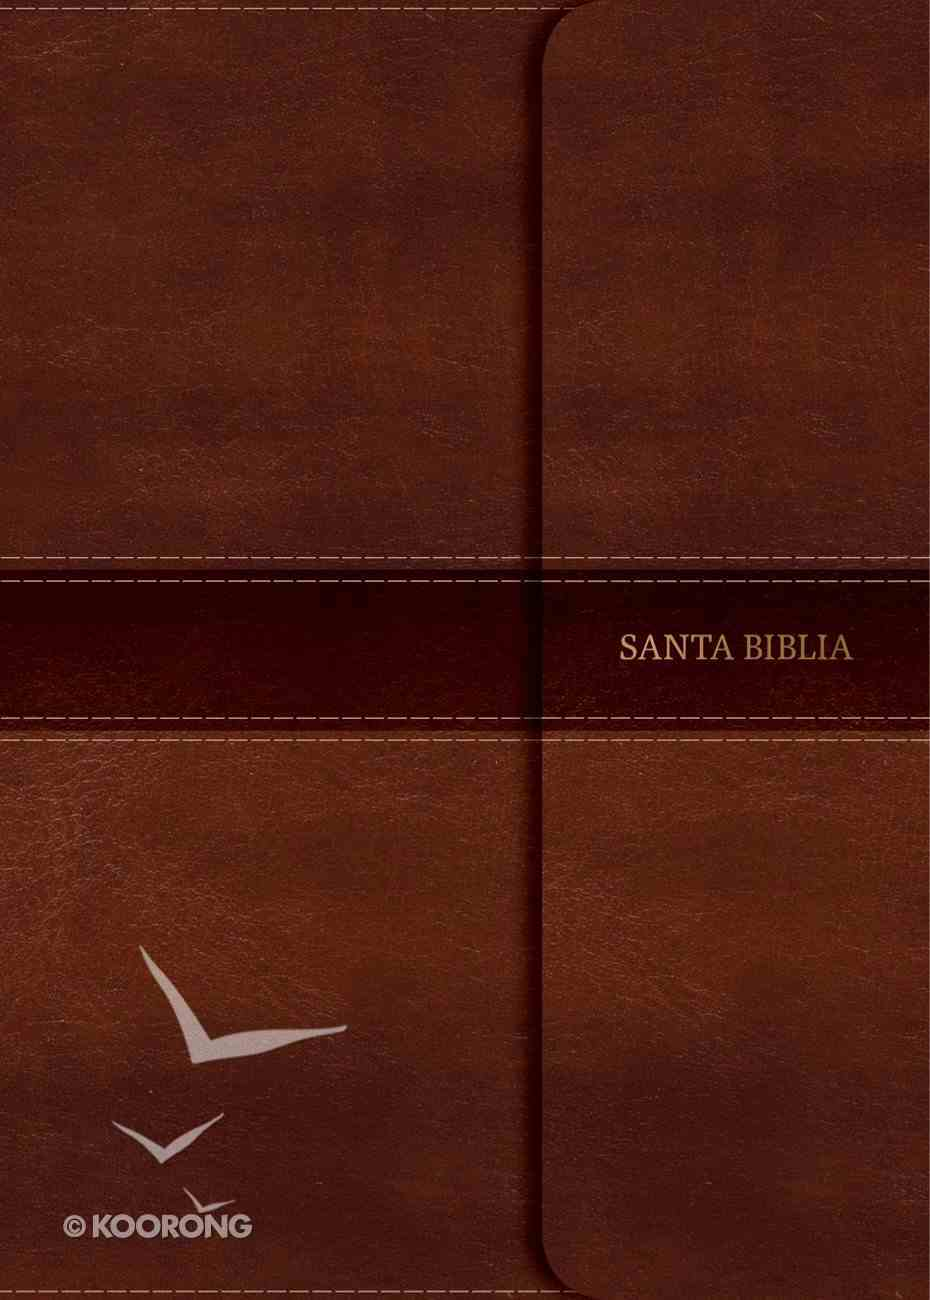 Nvi Biblia Letra Grande Tamano Manual Marron Indice Y Solapa Con Iman (Giant Print Indexed Magnetic Flap) Imitation Leather